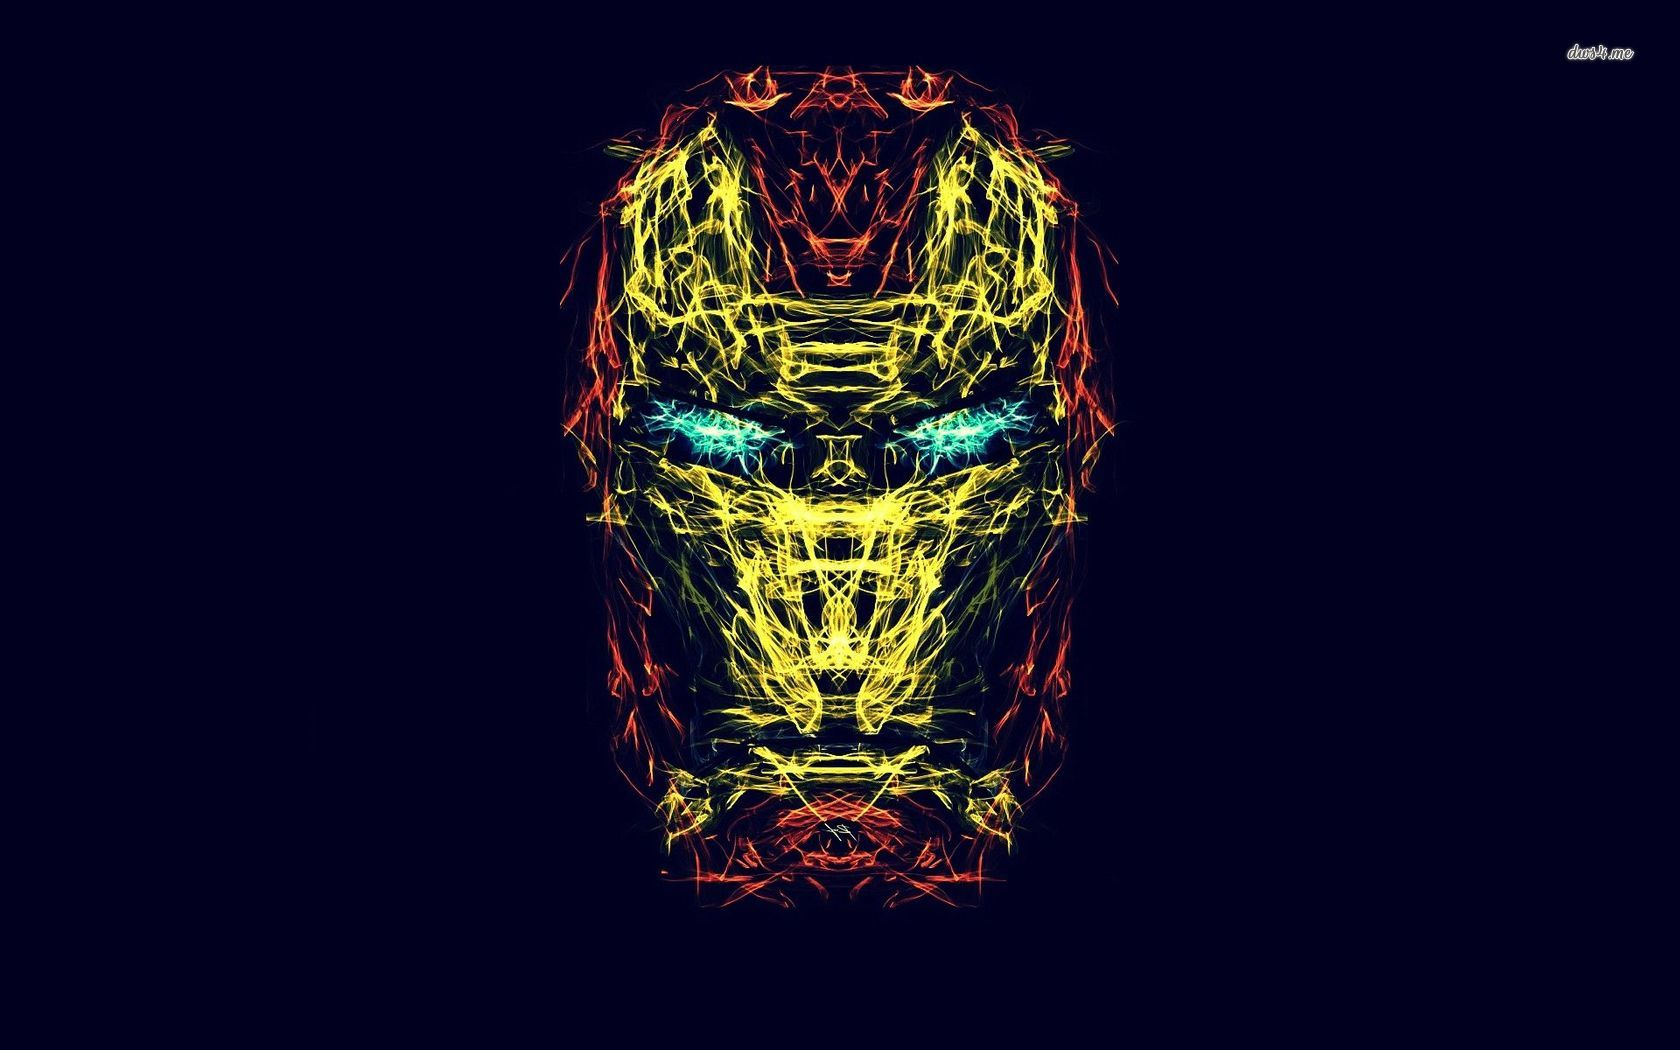 Iron Man Wallpapers Full Hd Desktop Background: 35 Iron Man HD Wallpapers For Desktop